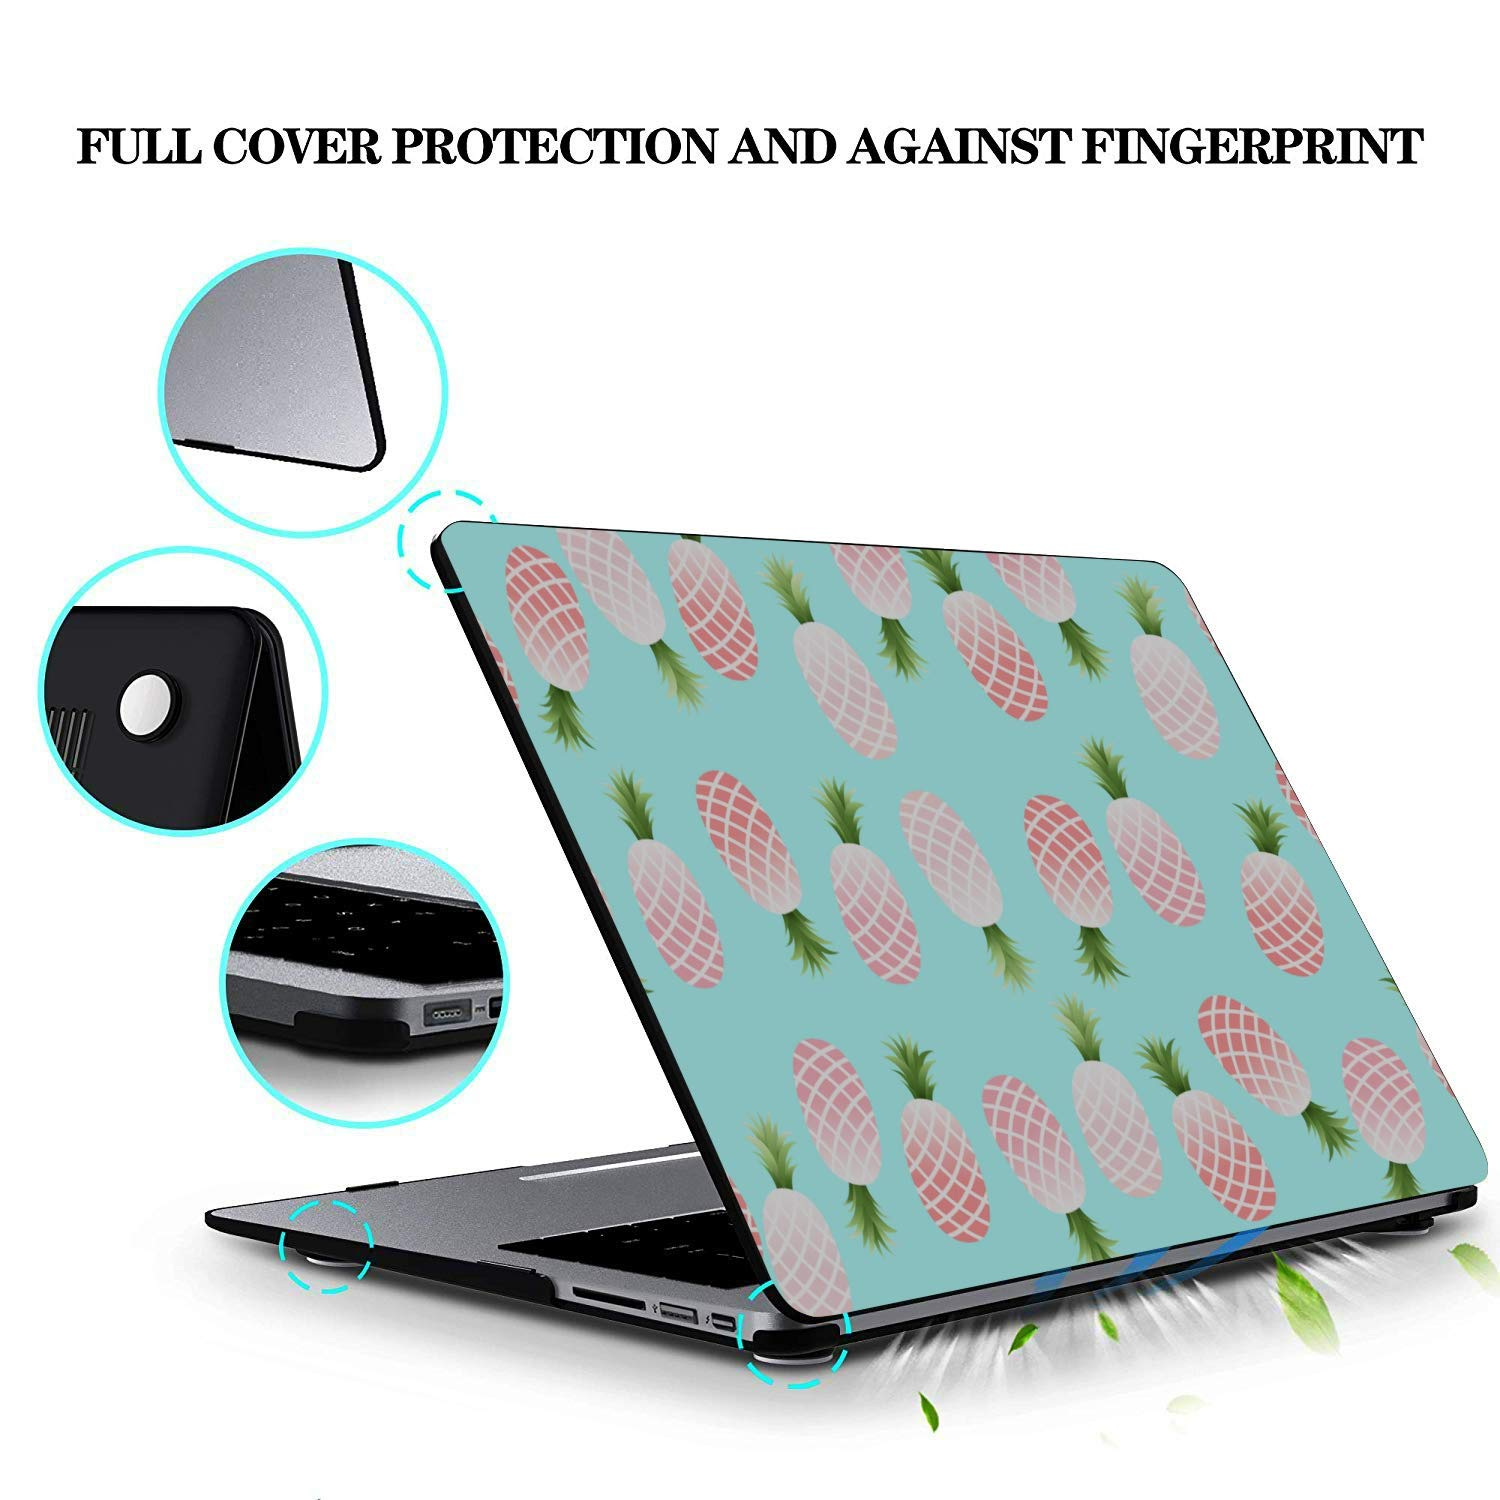 Mac Book Pro Case Summer Sweet Fresh Fruit Pineapple Plastic Hard Shell Compatible Mac Air 11 Pro 13 15 Laptop Case 13 Inch Protection for MacBook 2016-2019 Version